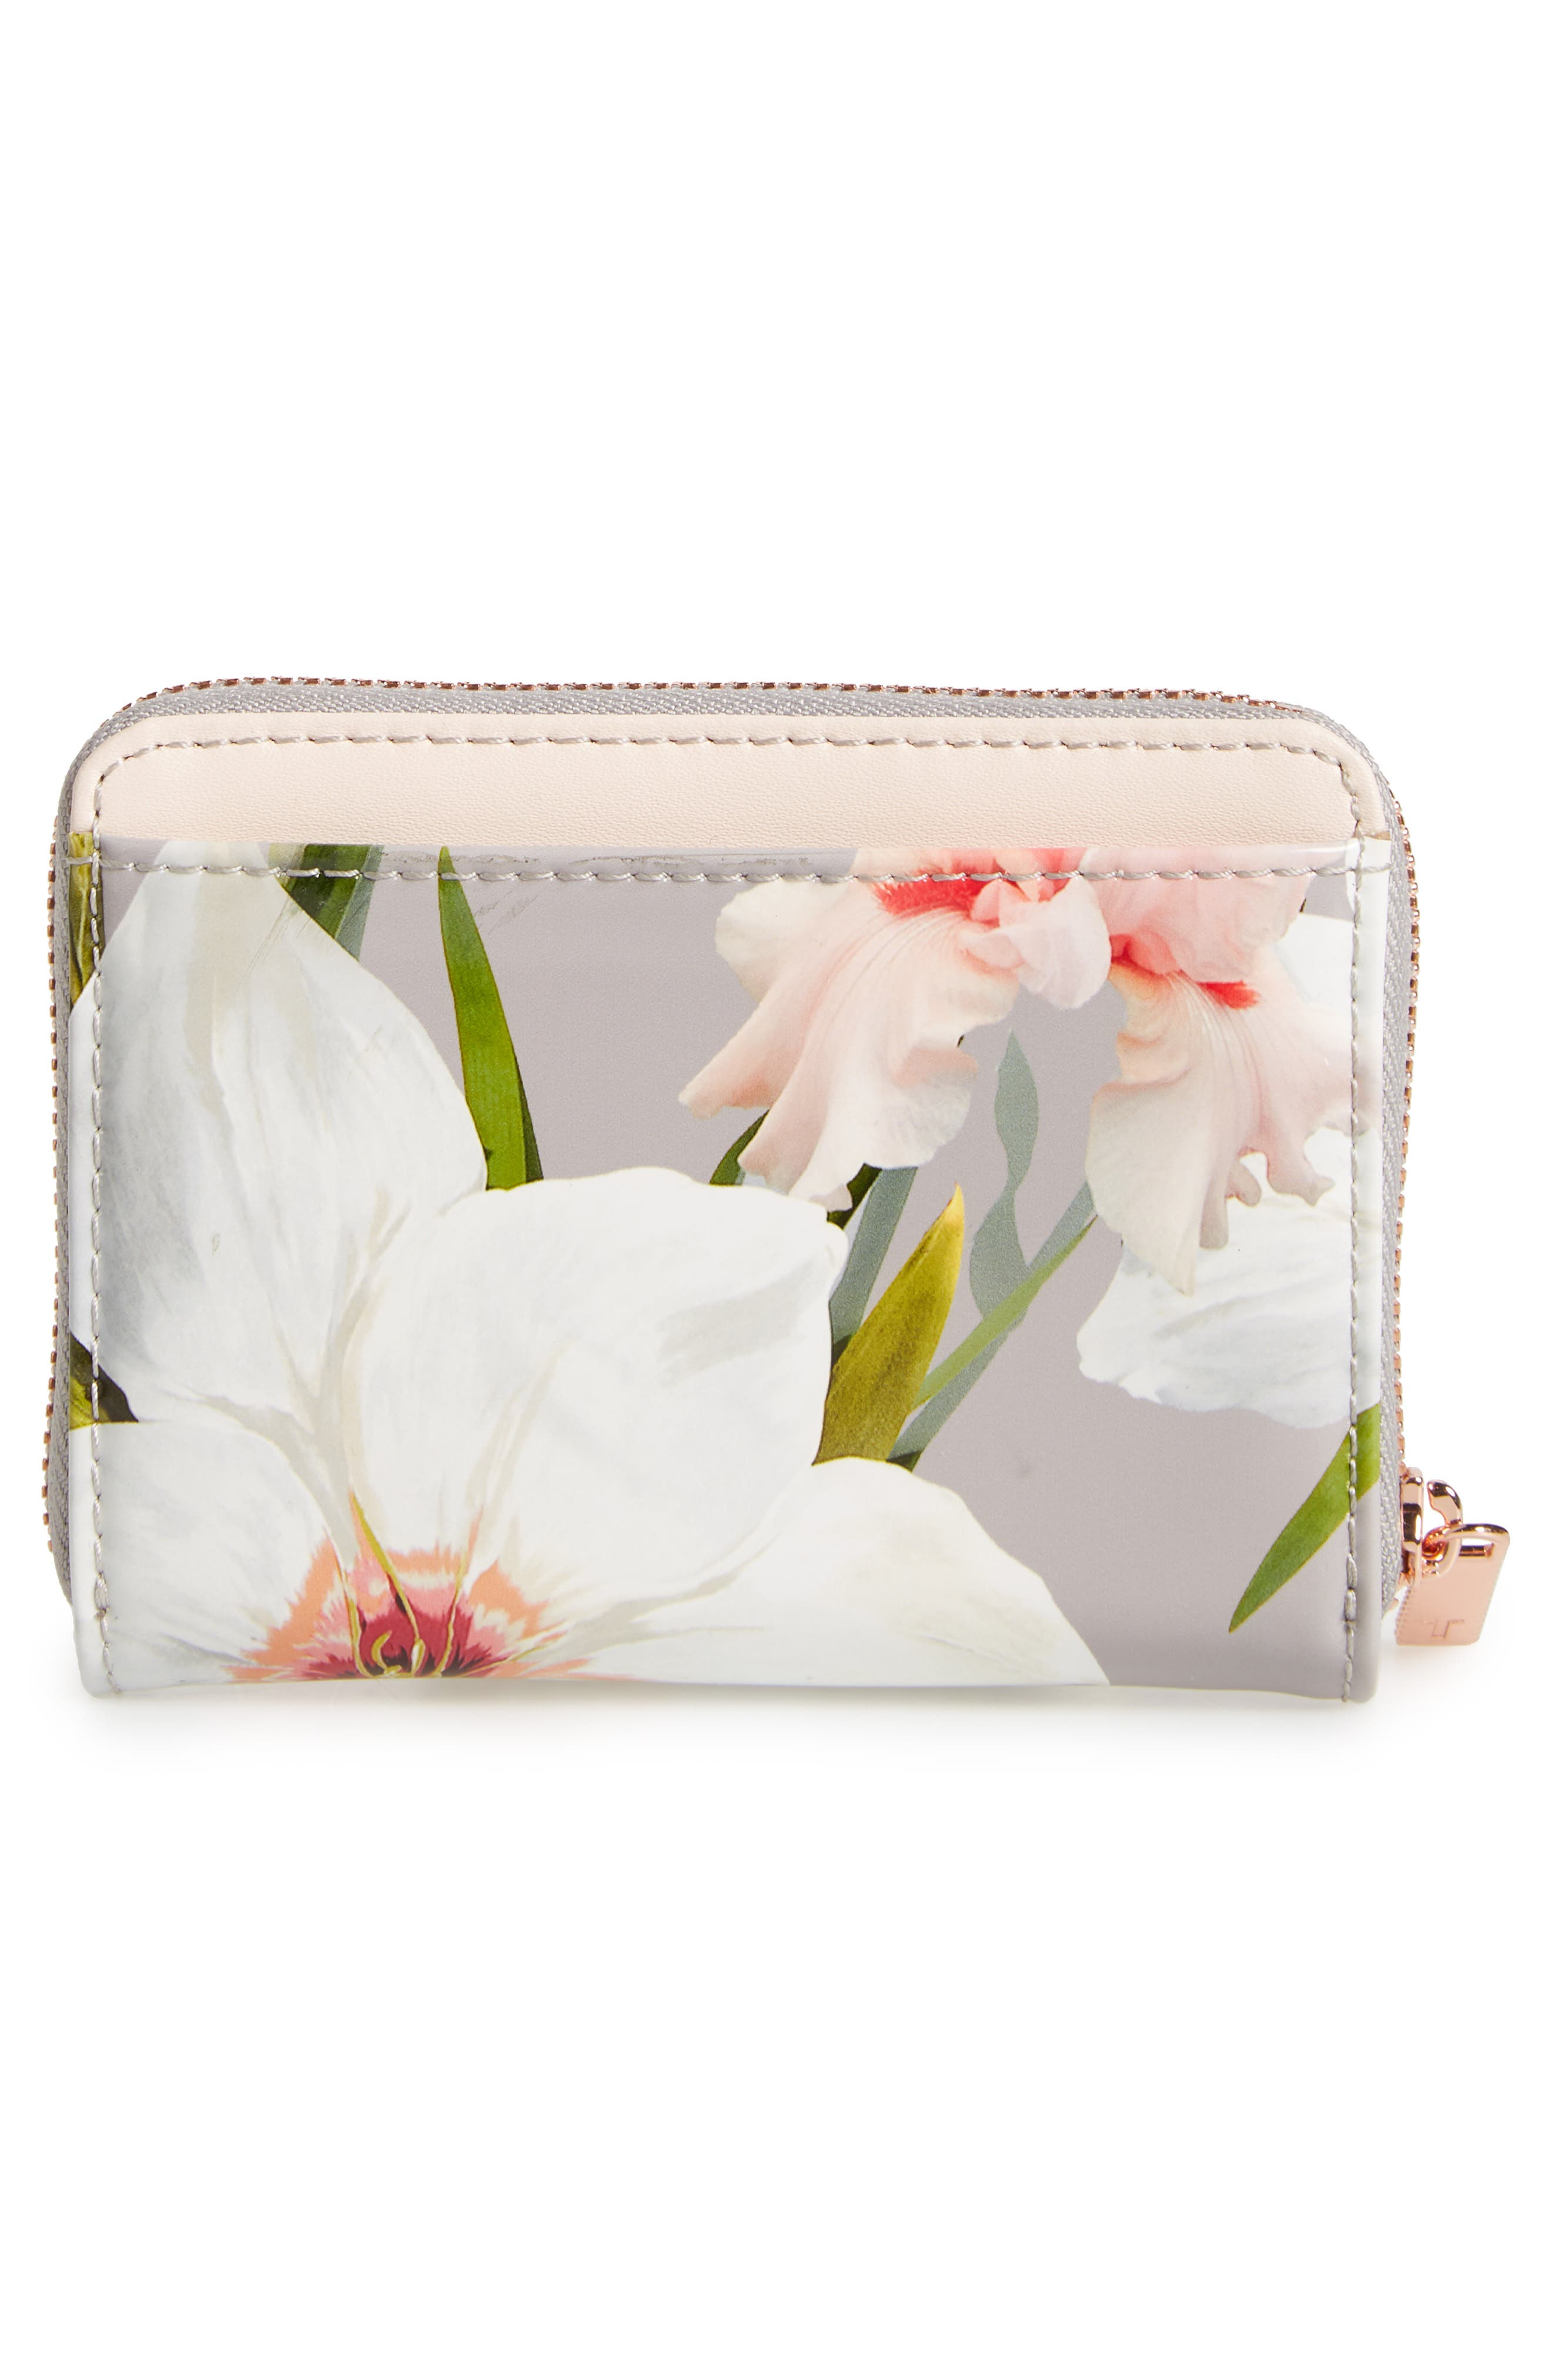 Vallie Chatsworth Bloom Leather Zip Coin Purse,                             Alternate thumbnail 4, color,                             020